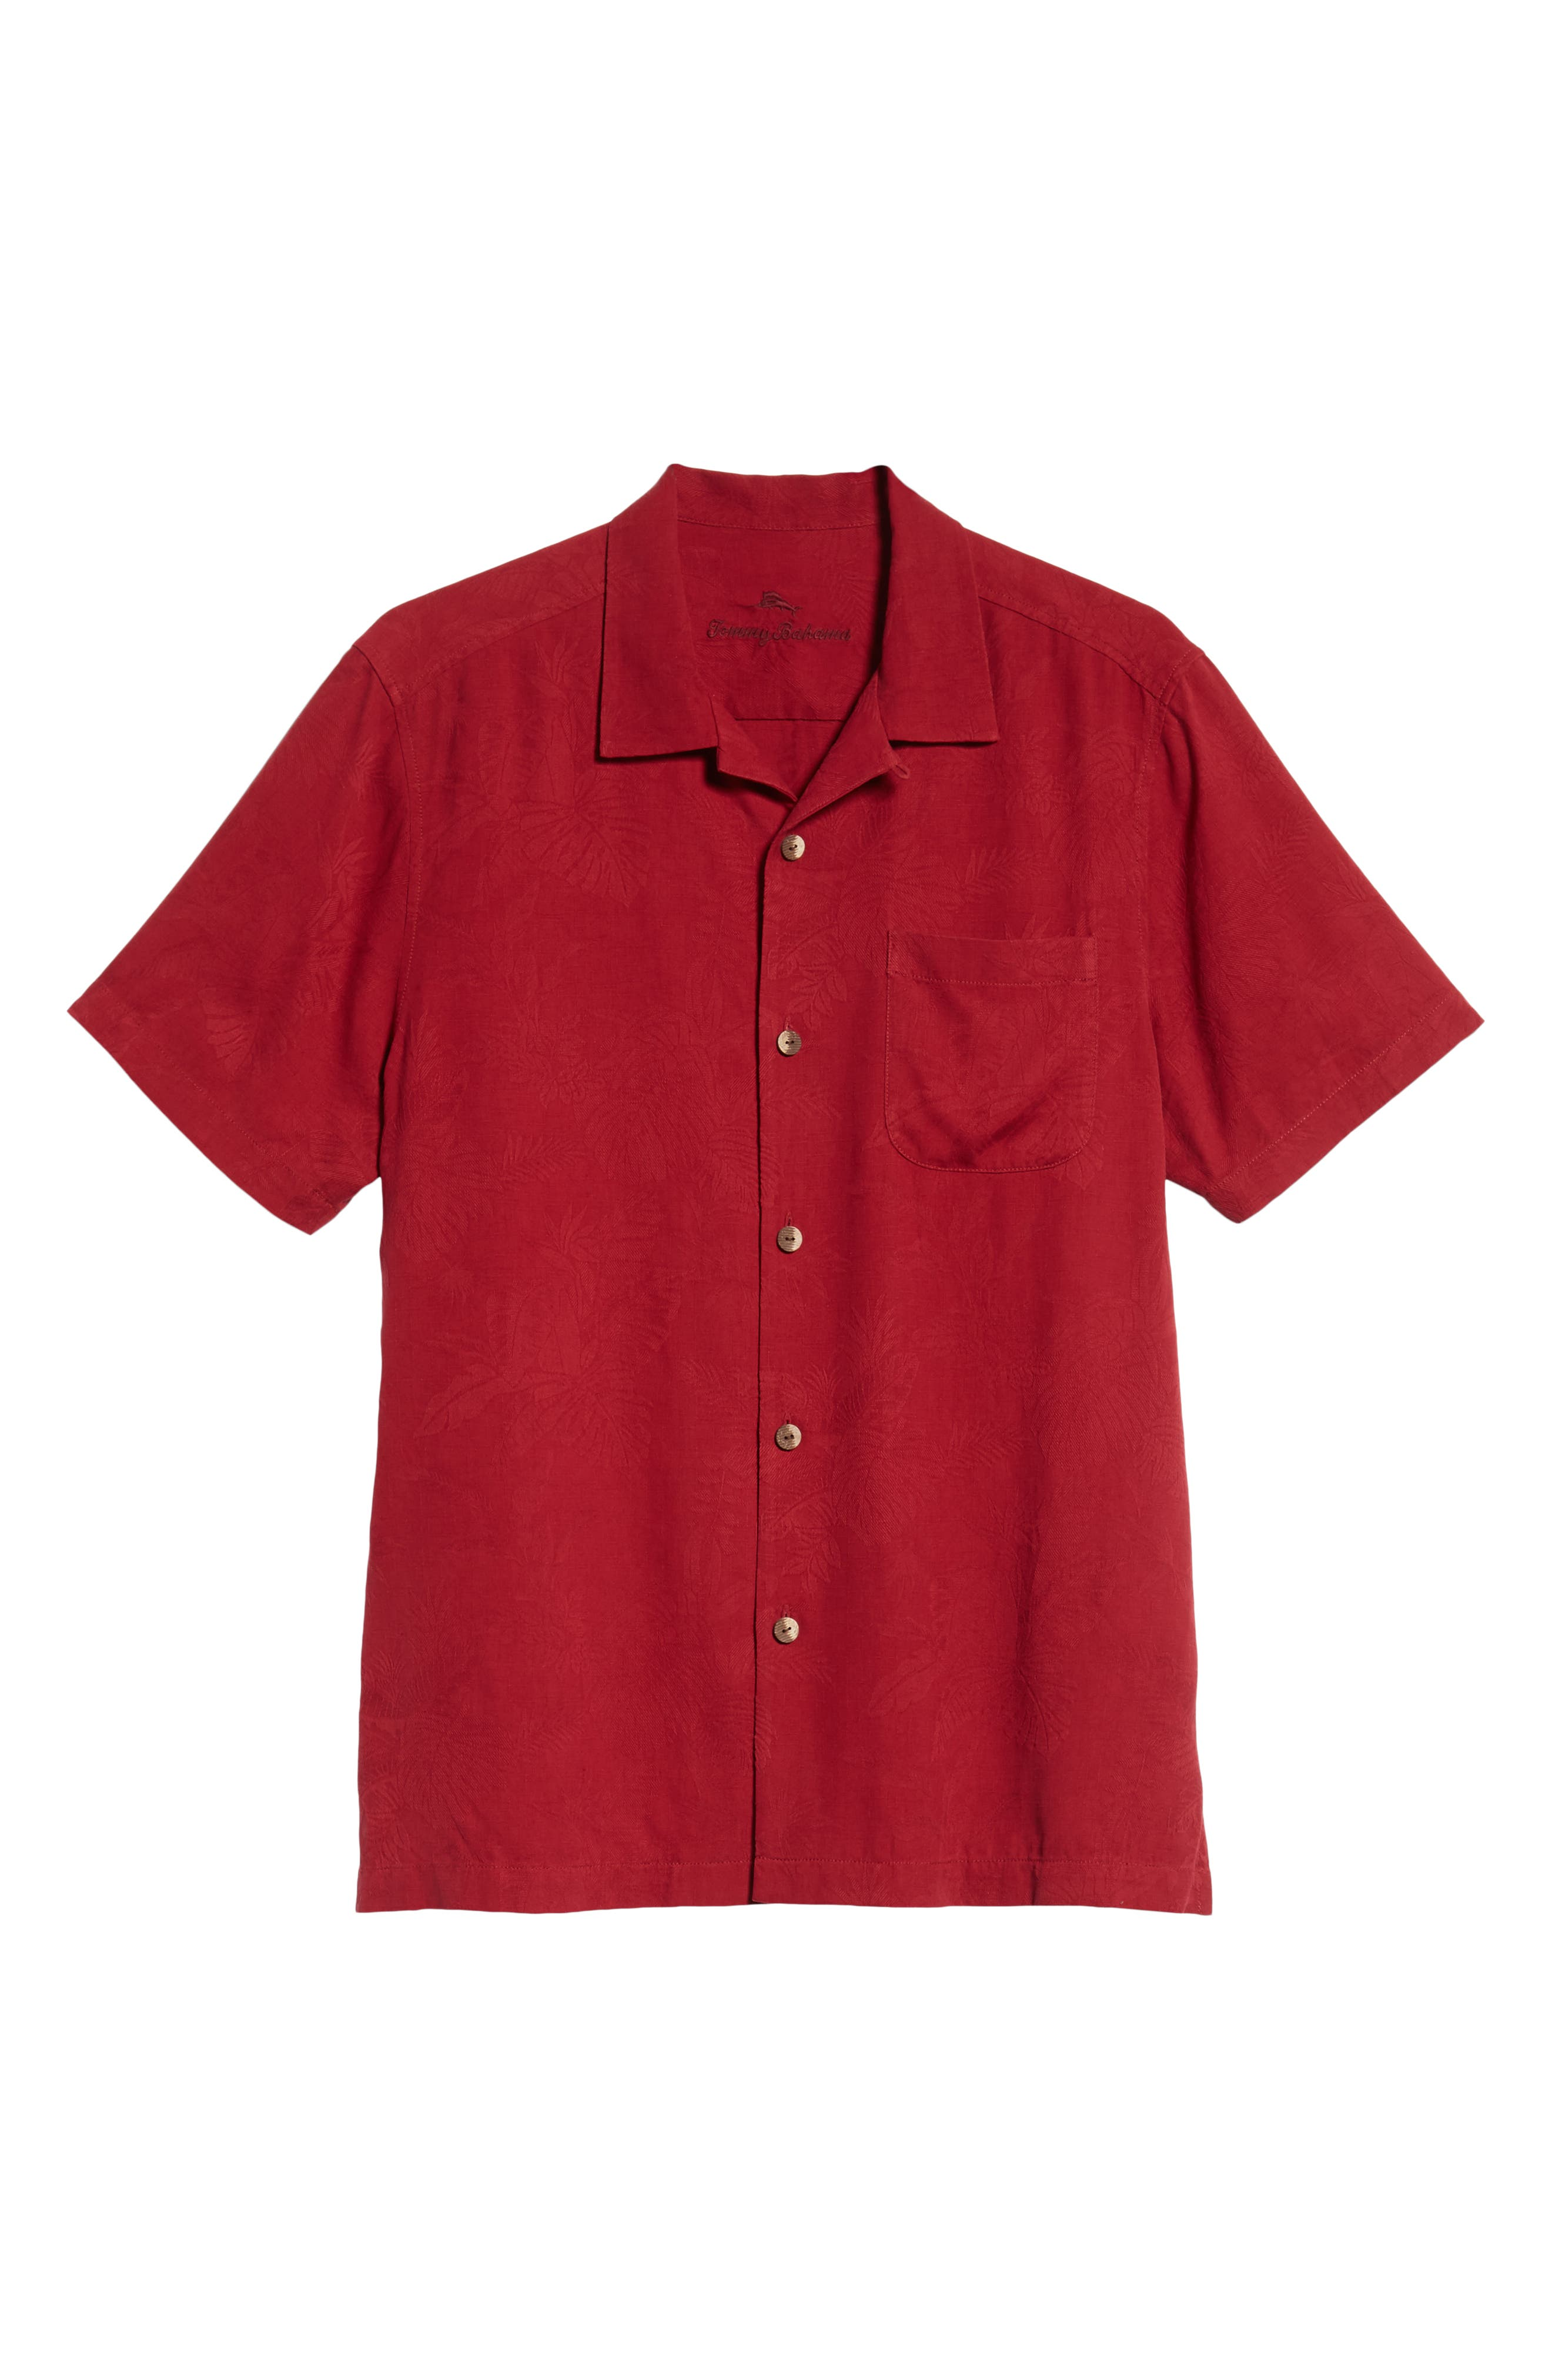 St Lucia Fronds Silk Camp Shirt,                             Alternate thumbnail 5, color,                             RED/ PLUM RAISIN